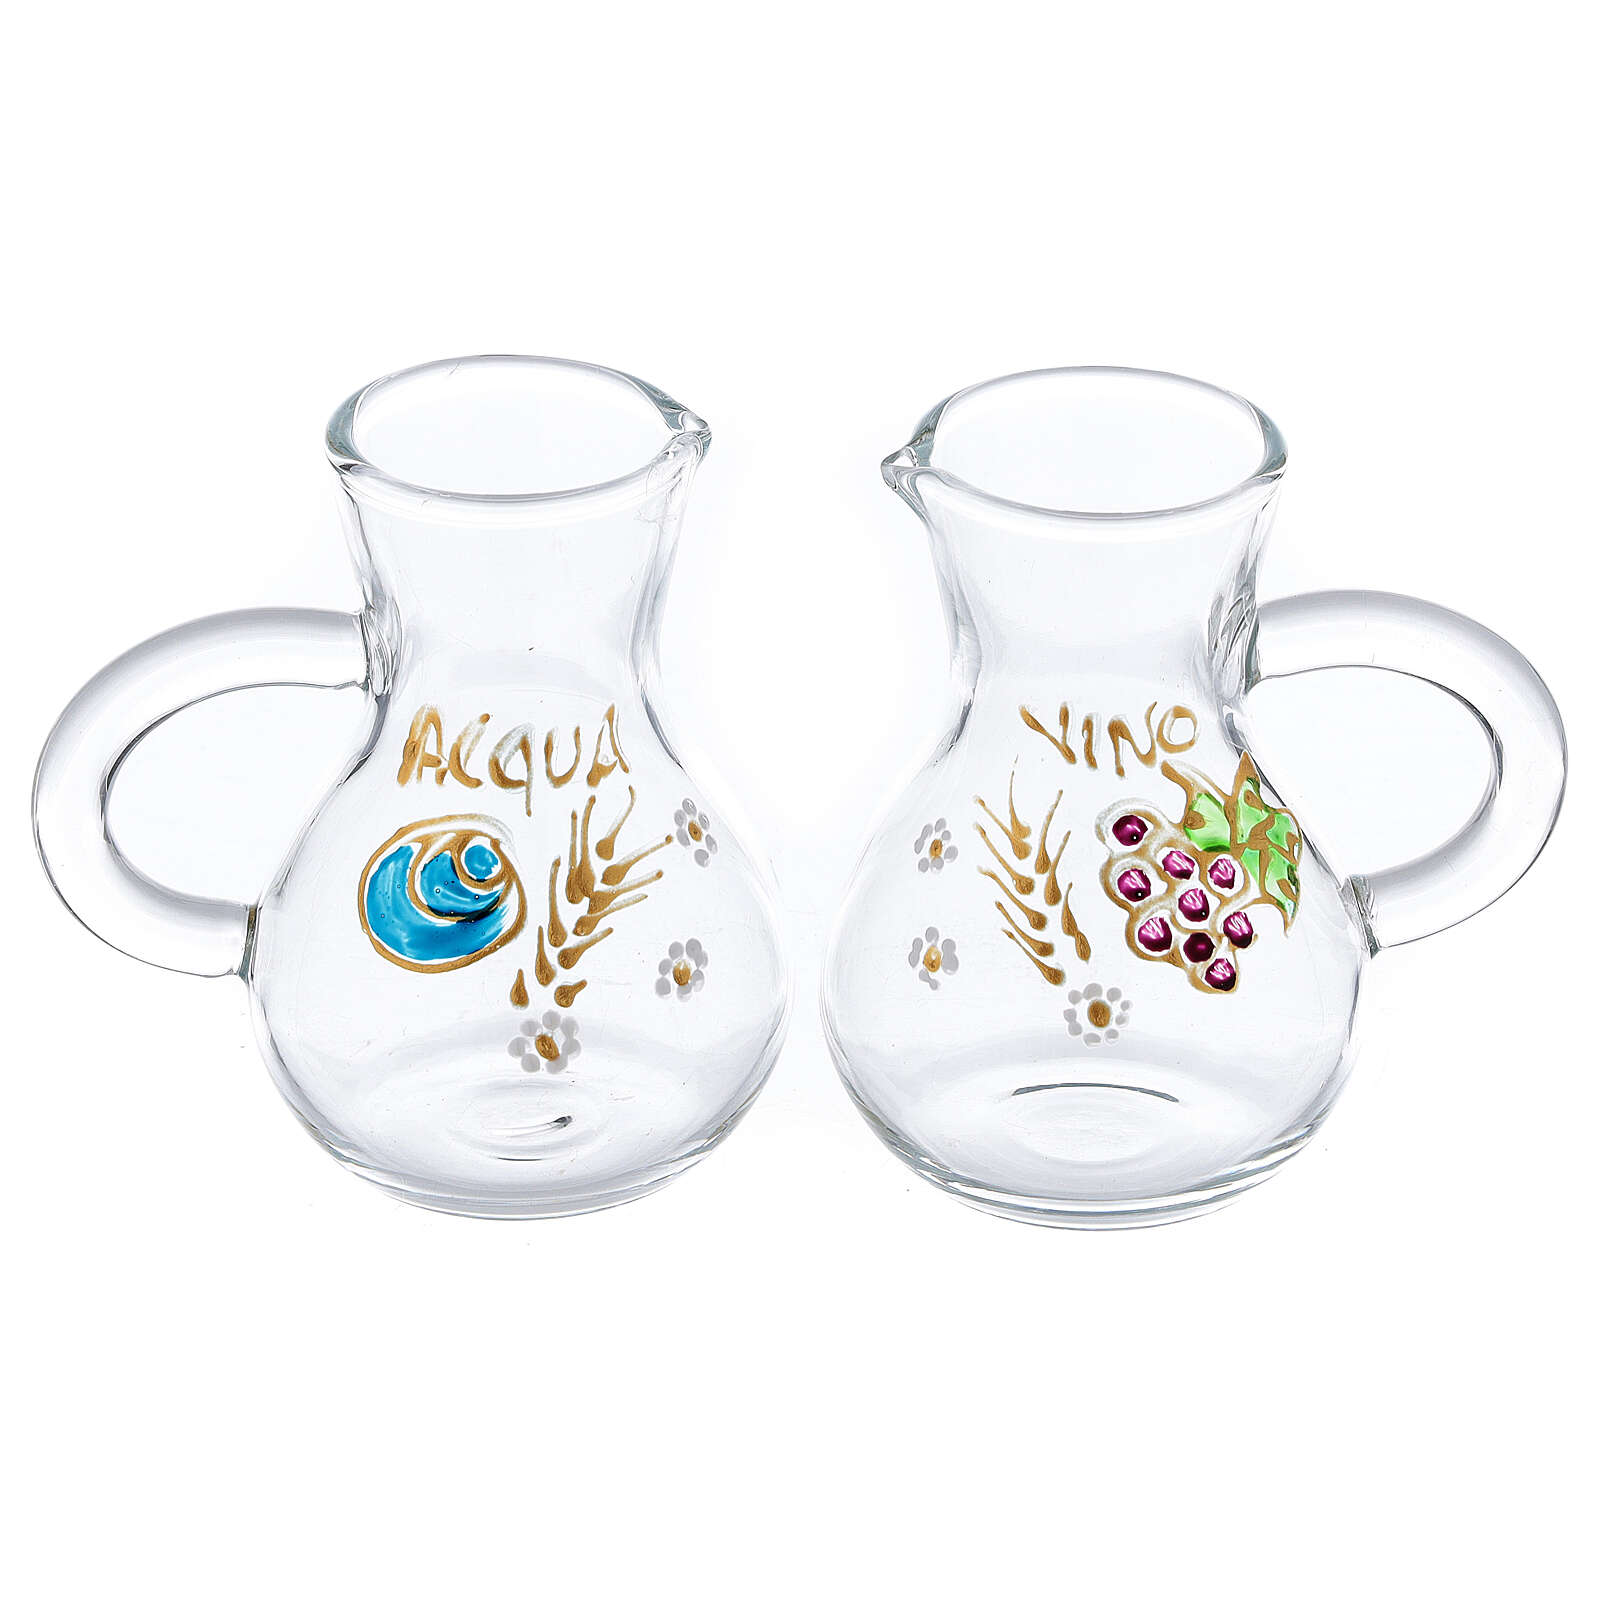 Parma glass cruets painted by hand 75 ml 4